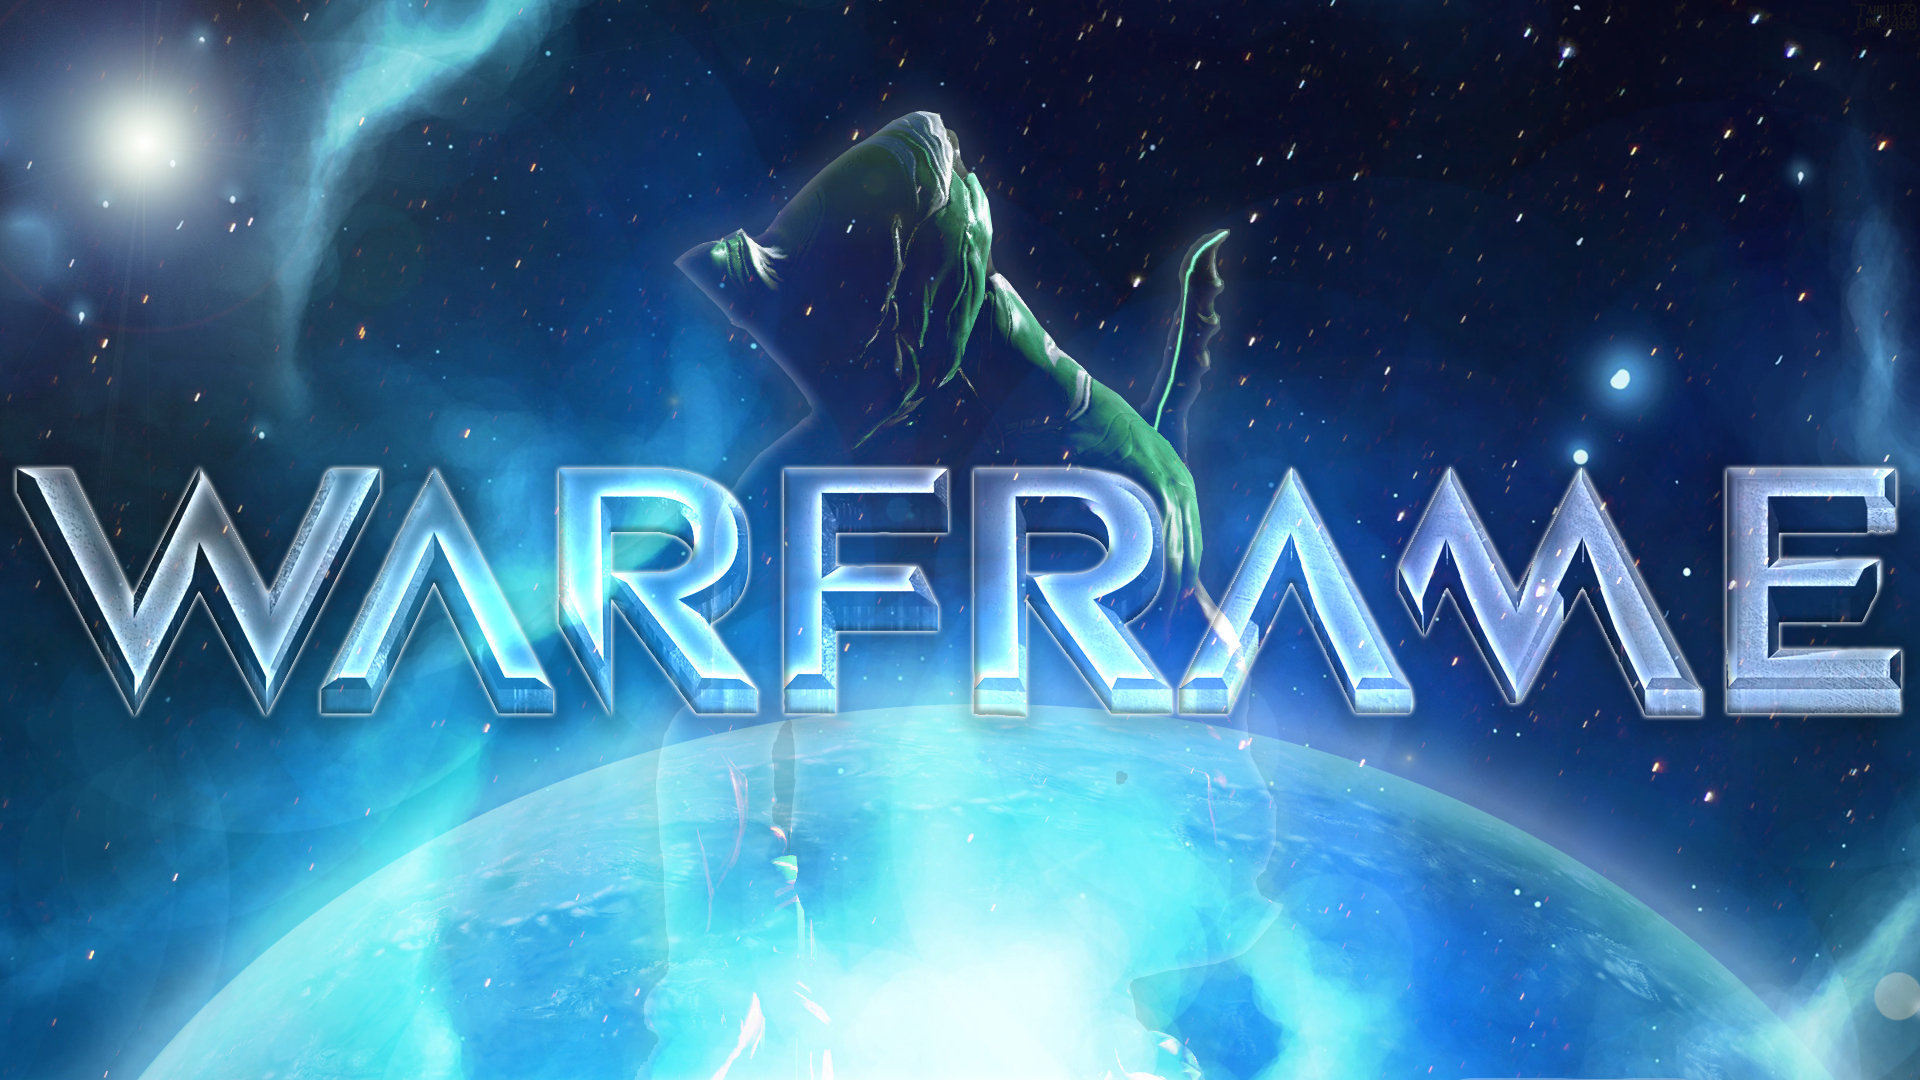 Warframe Wallpaper Warframe 1920x1080